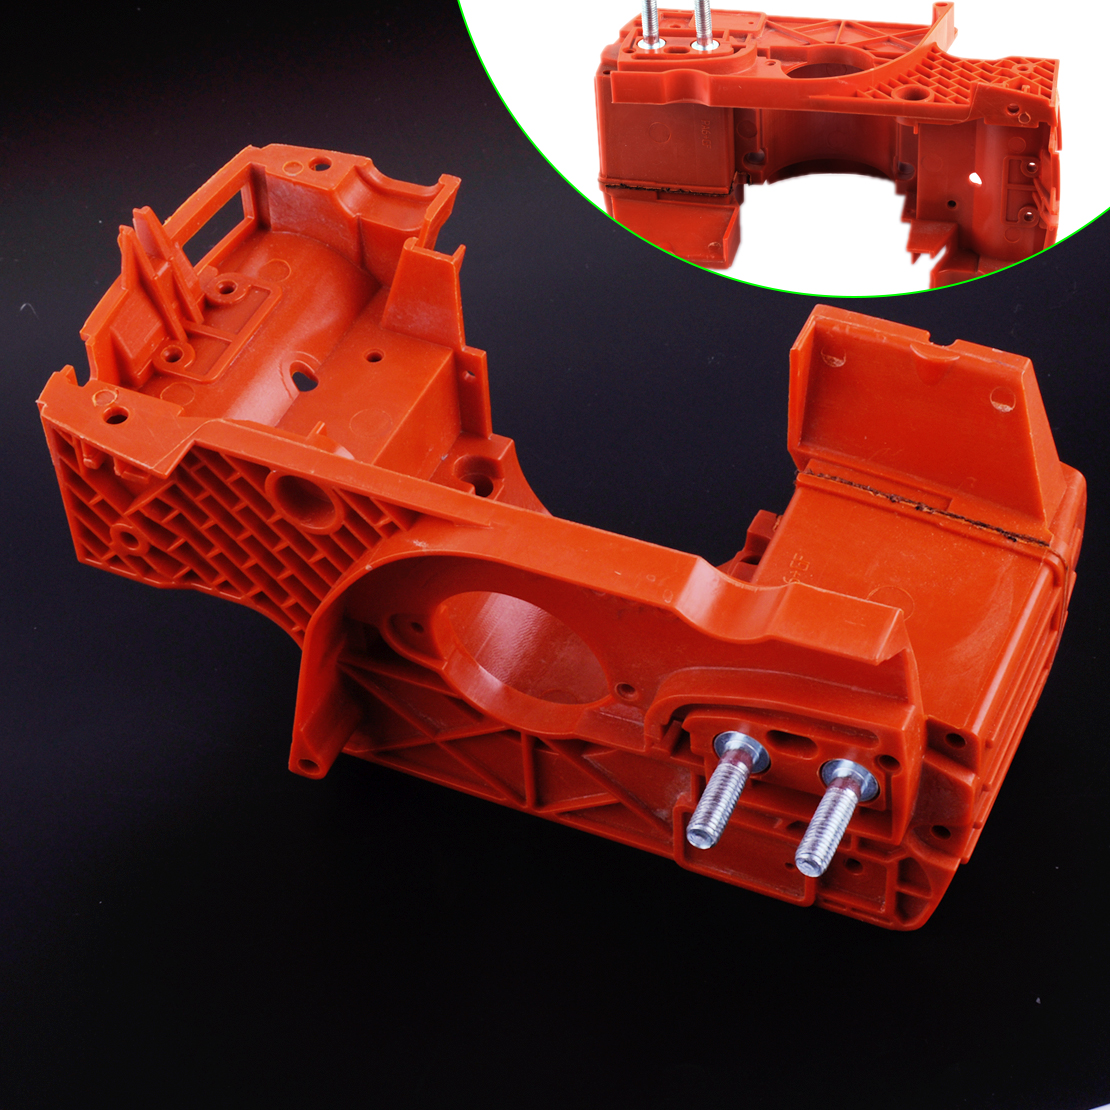 LETAOSK Crankcase Engine Housing Oil Tank Fit For HUSQVARNA 137 142 Chainsaw Part 530071991Accessories